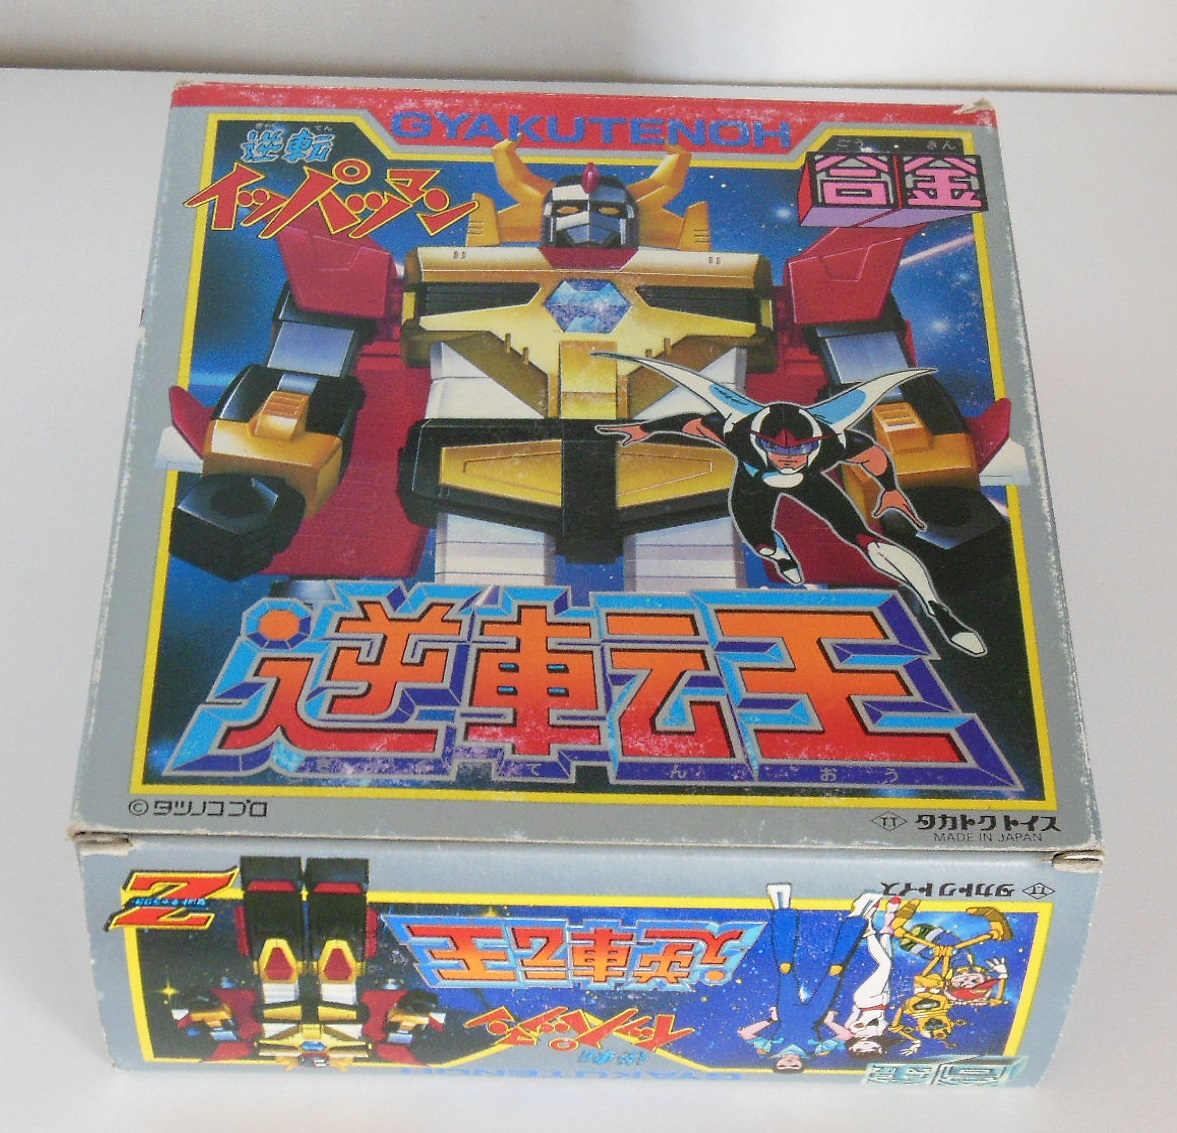 Gyakutenoh ST Takatoku Toys 1982 Z-Gokin Gyakuten-oh front-bottom of box from the anime series Gyakuten! Ippatsuman (逆転!イッパツマン) from 1982-1983